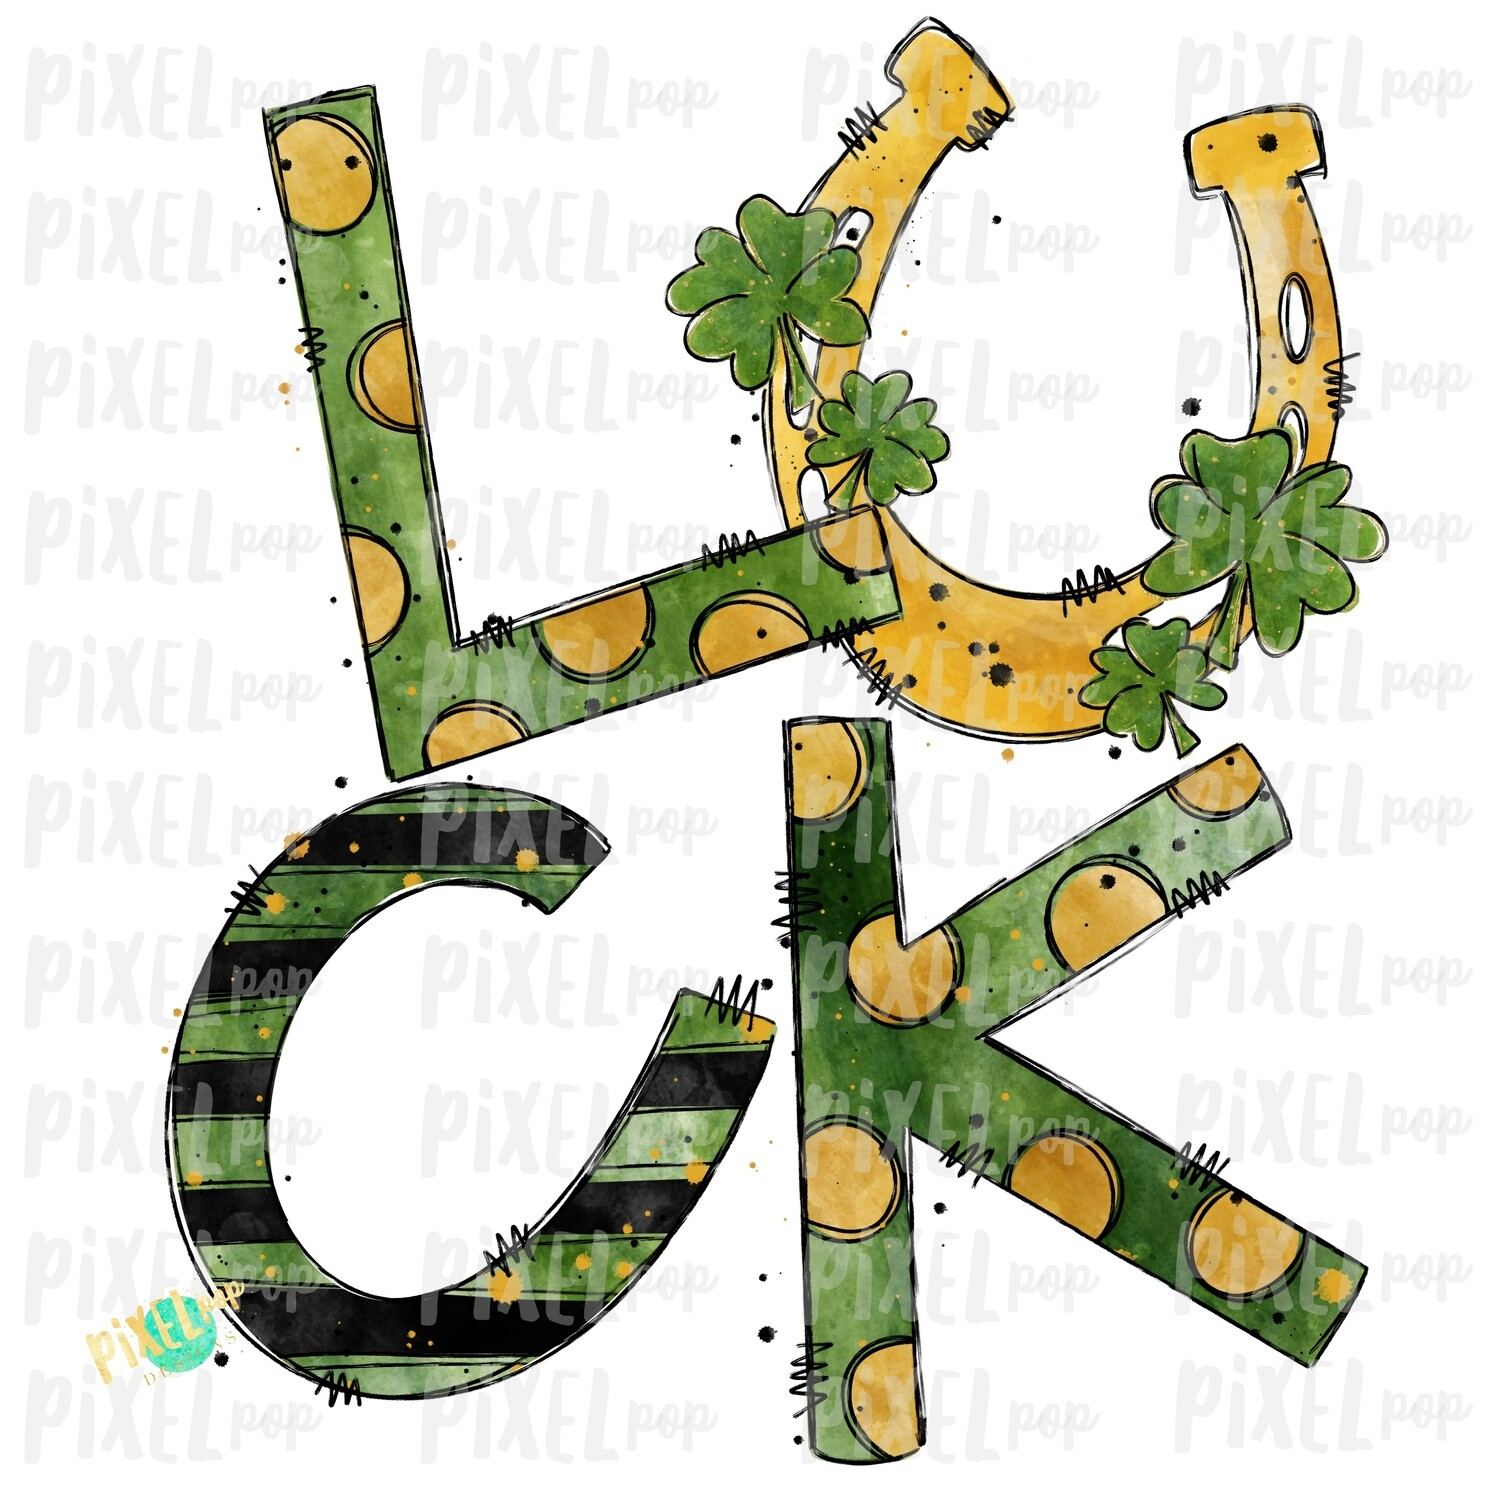 Luck Saint Patrick's Day Sublimation PNG | CloverArt | Horeshoe Design | Hand Painted Art | Digital Download | Printable | St. Paddy's Day